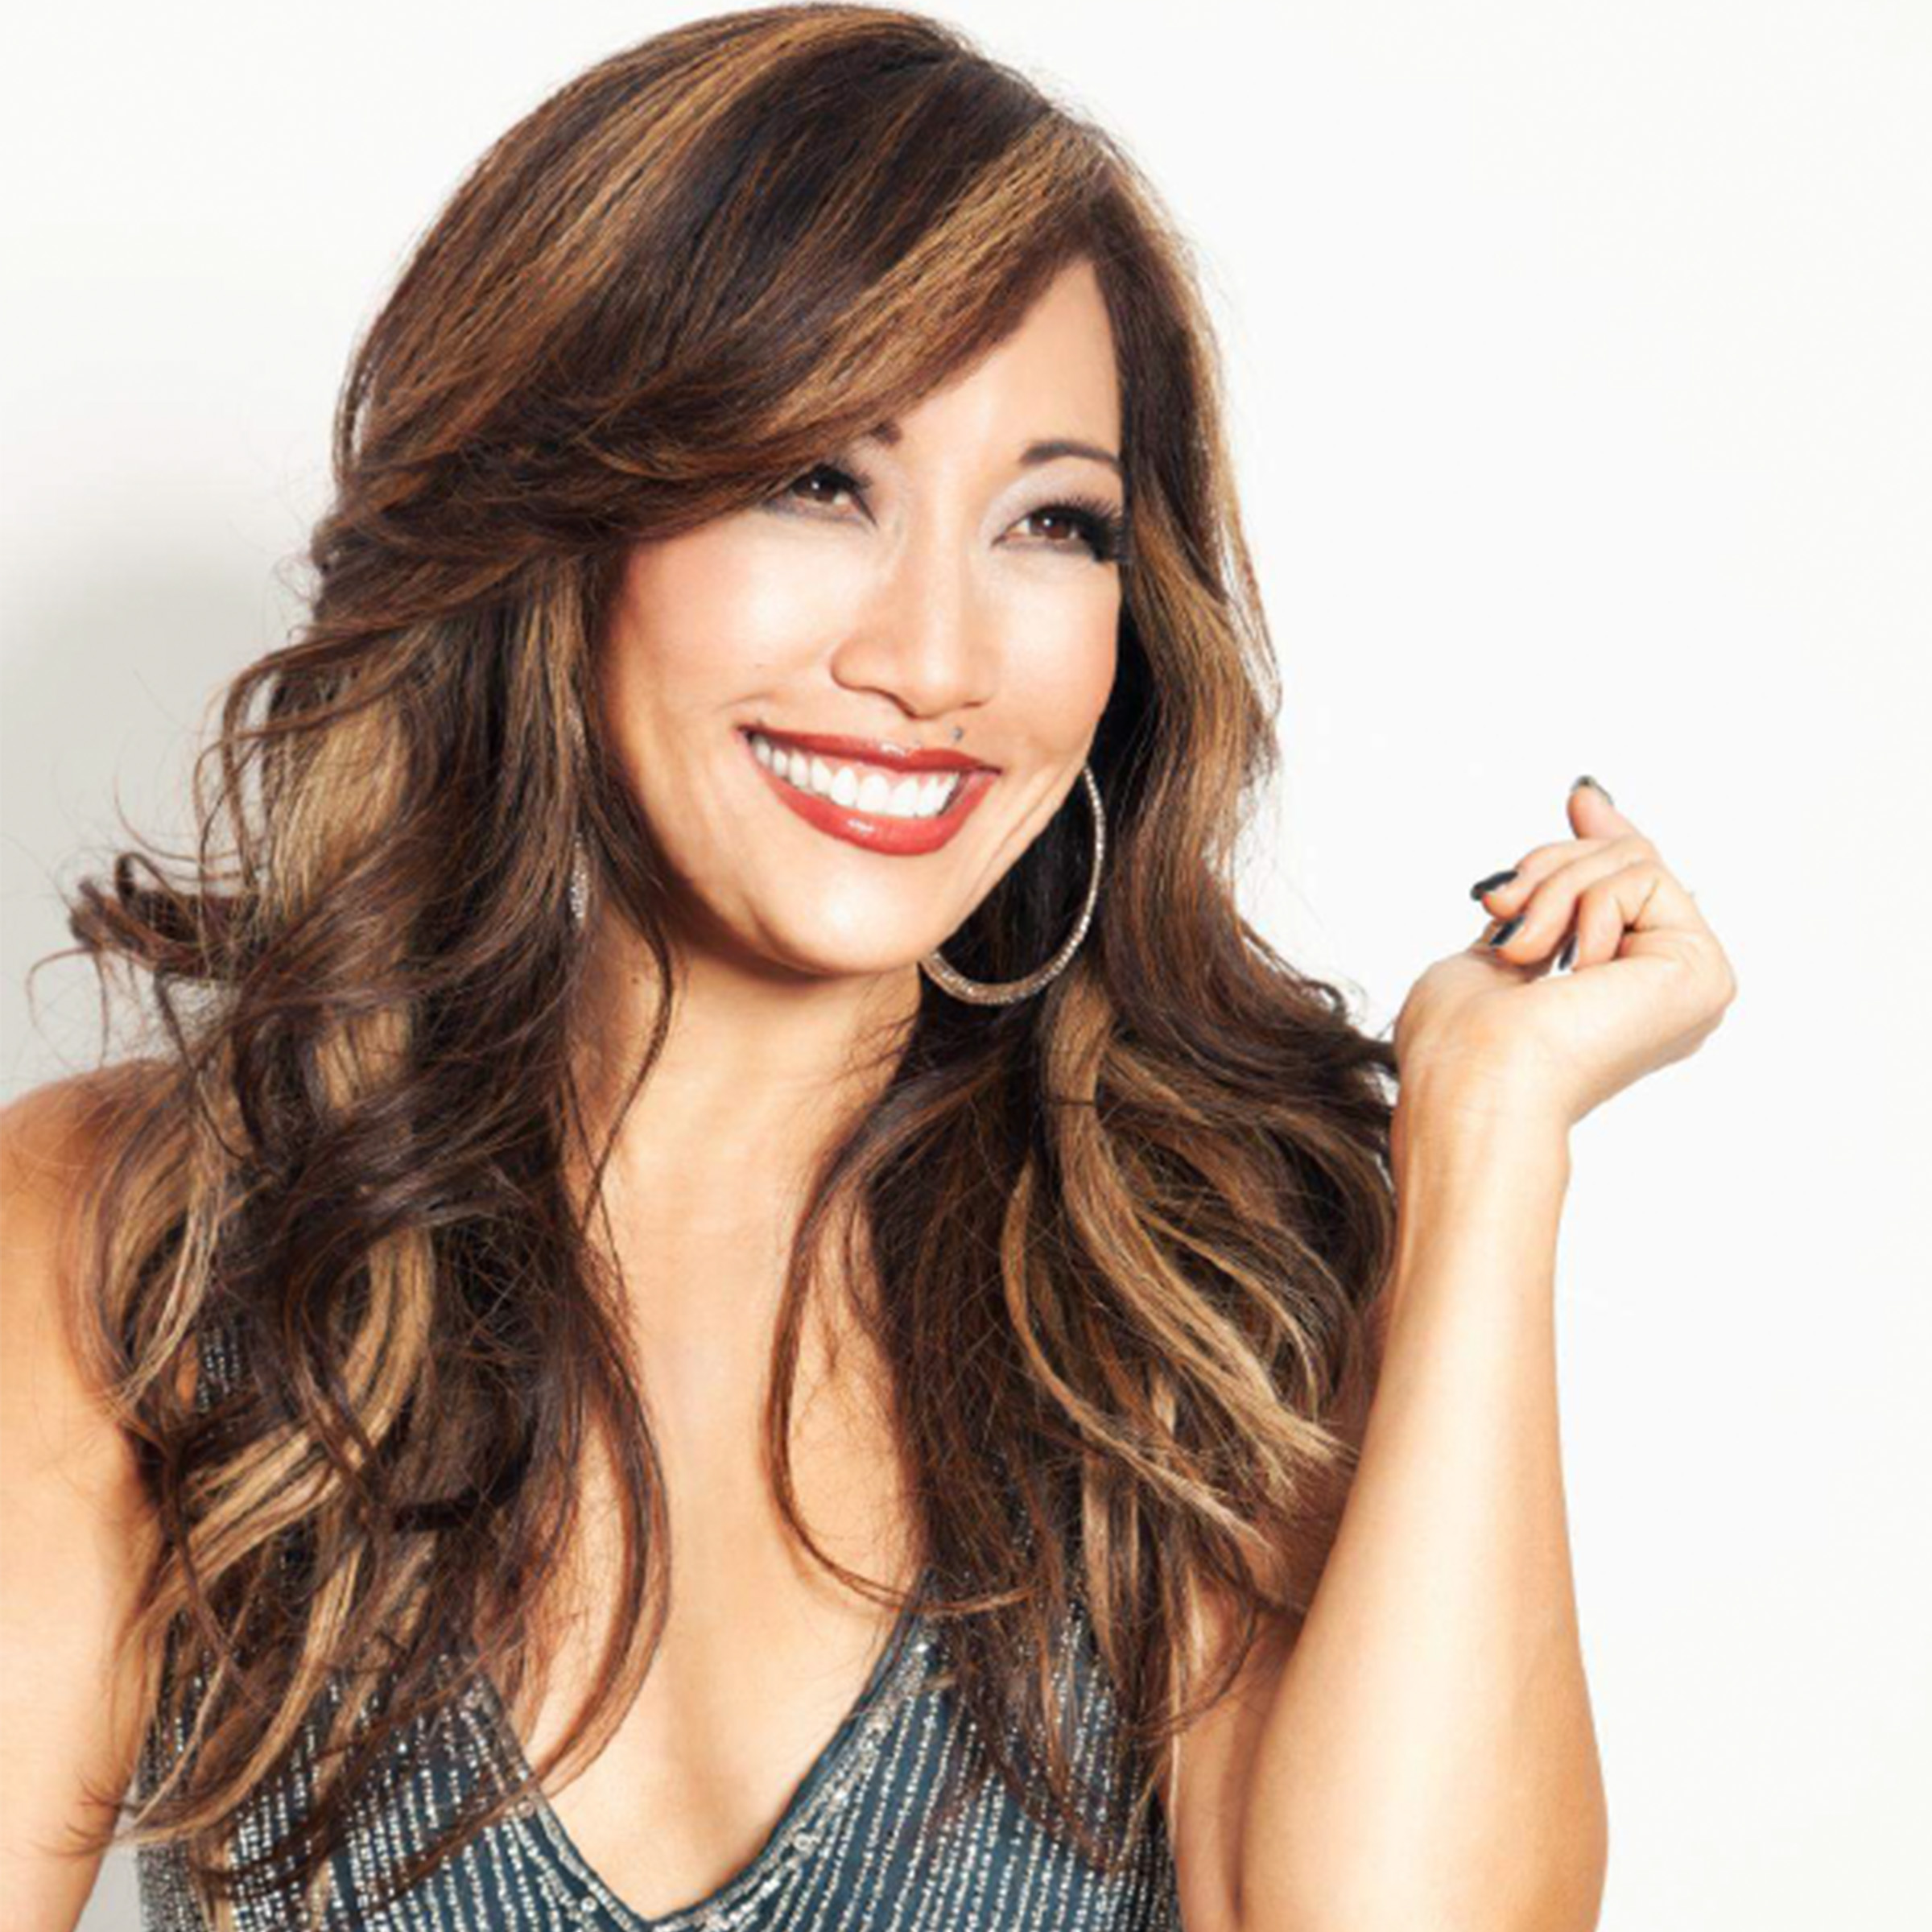 Carrie Ann Inaba image